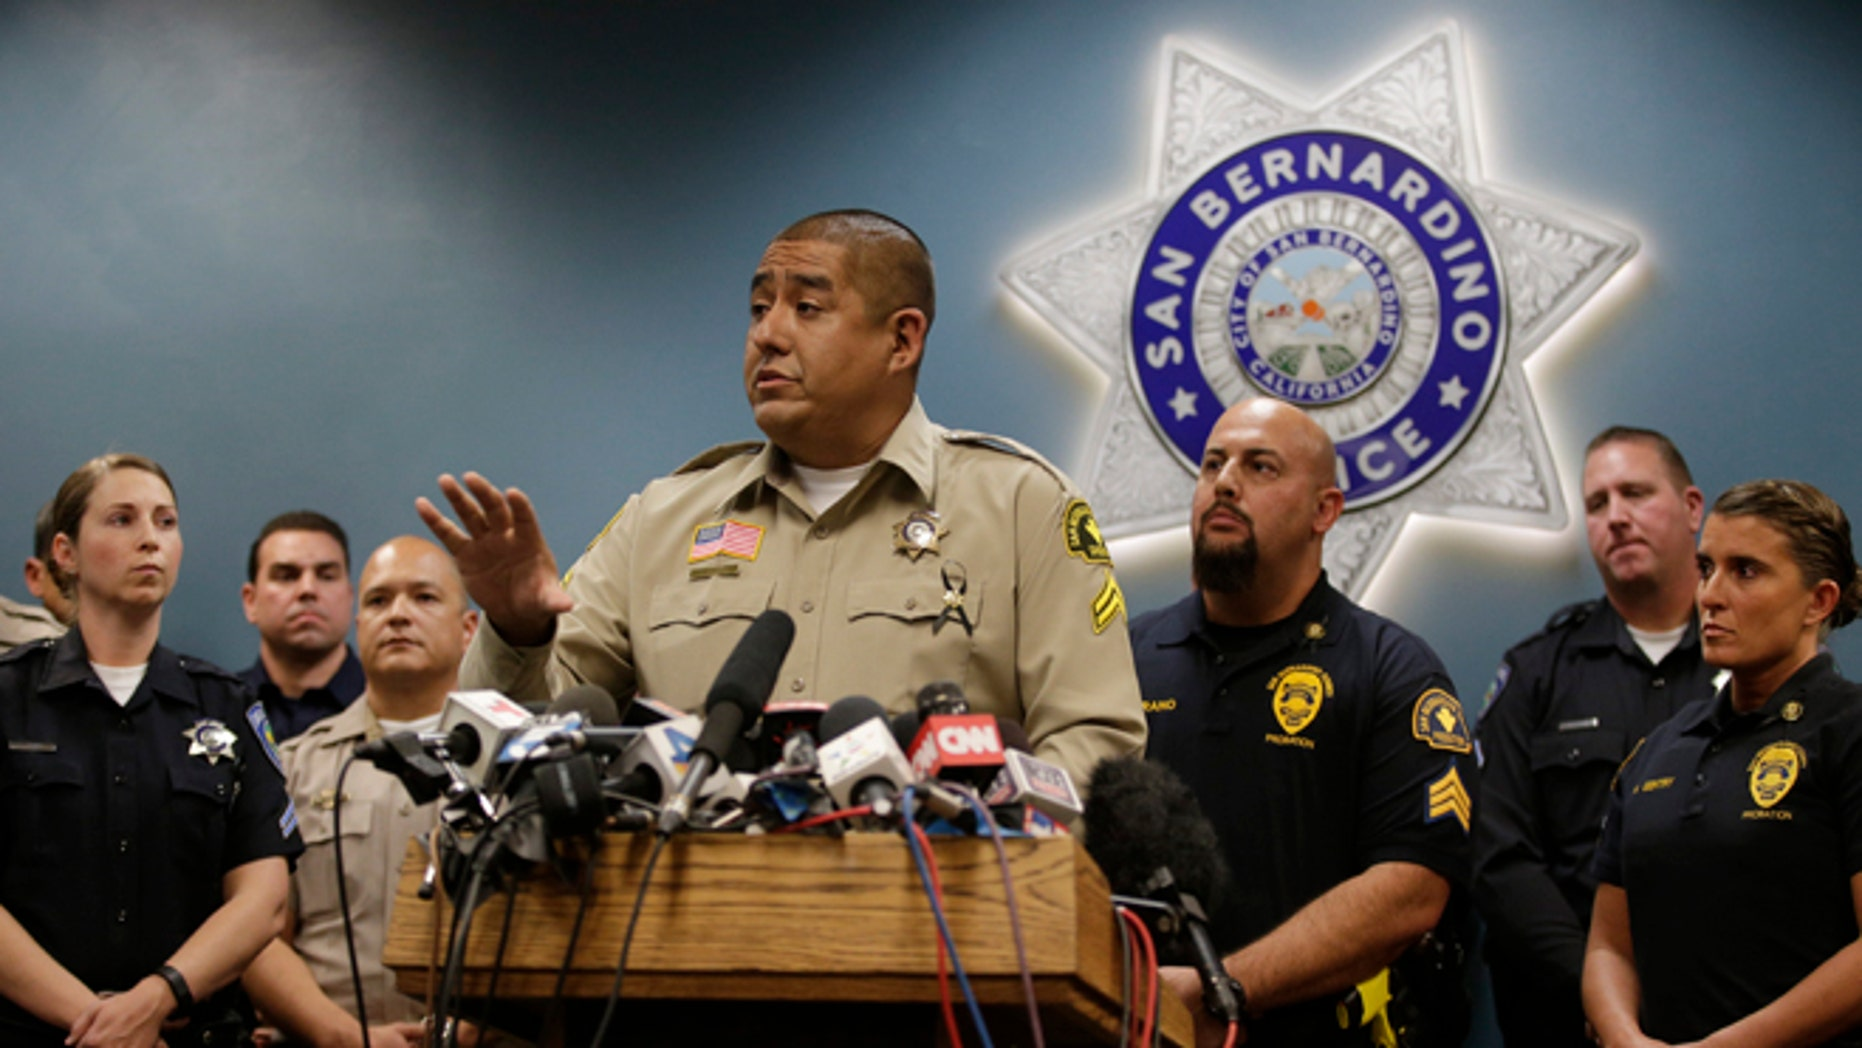 "San Bernardino County Sheriff's detective Jorge Lozano, center, answers questions from reporters during a news conference with the first responders on the scene of last week's shooting, Tuesday, Dec. 8, 2015, in San Bernardino, Calif. Lozano was captured on video in a hallway of the Inland Regional Center telling employees and others who were stranded to follow him and that he would ""take a bullet before you do."" (AP Photo/Jae C. Hong)"